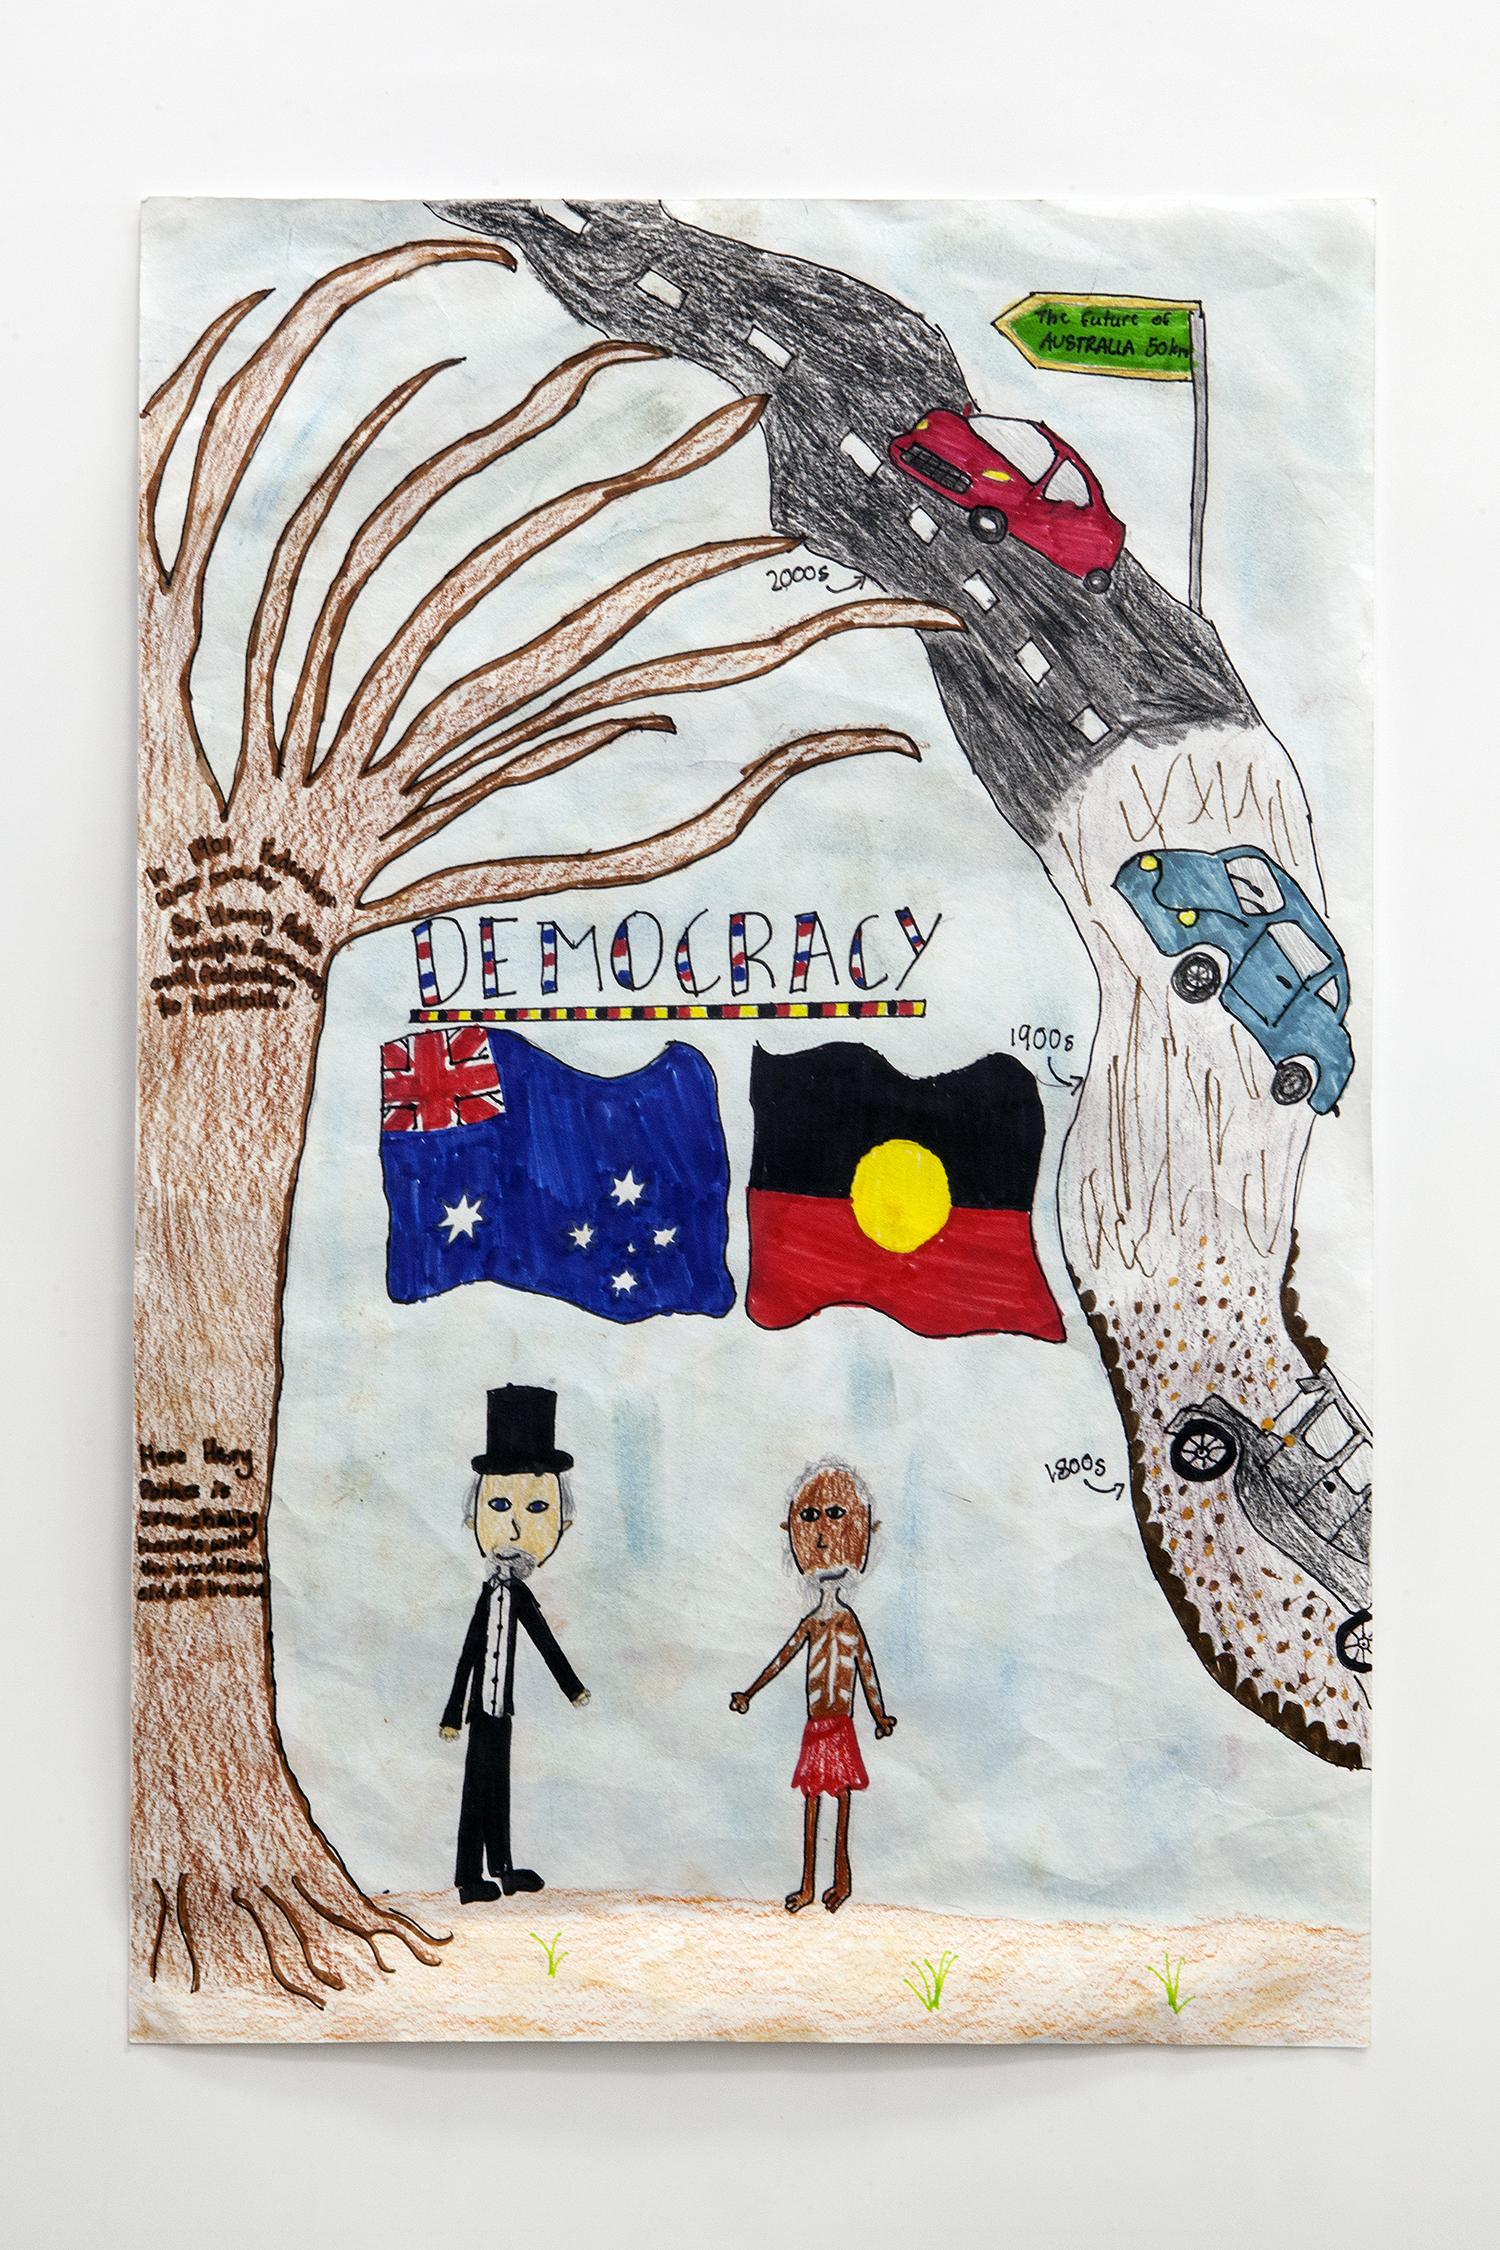 Entries from Cherrrybrook Public School NSW